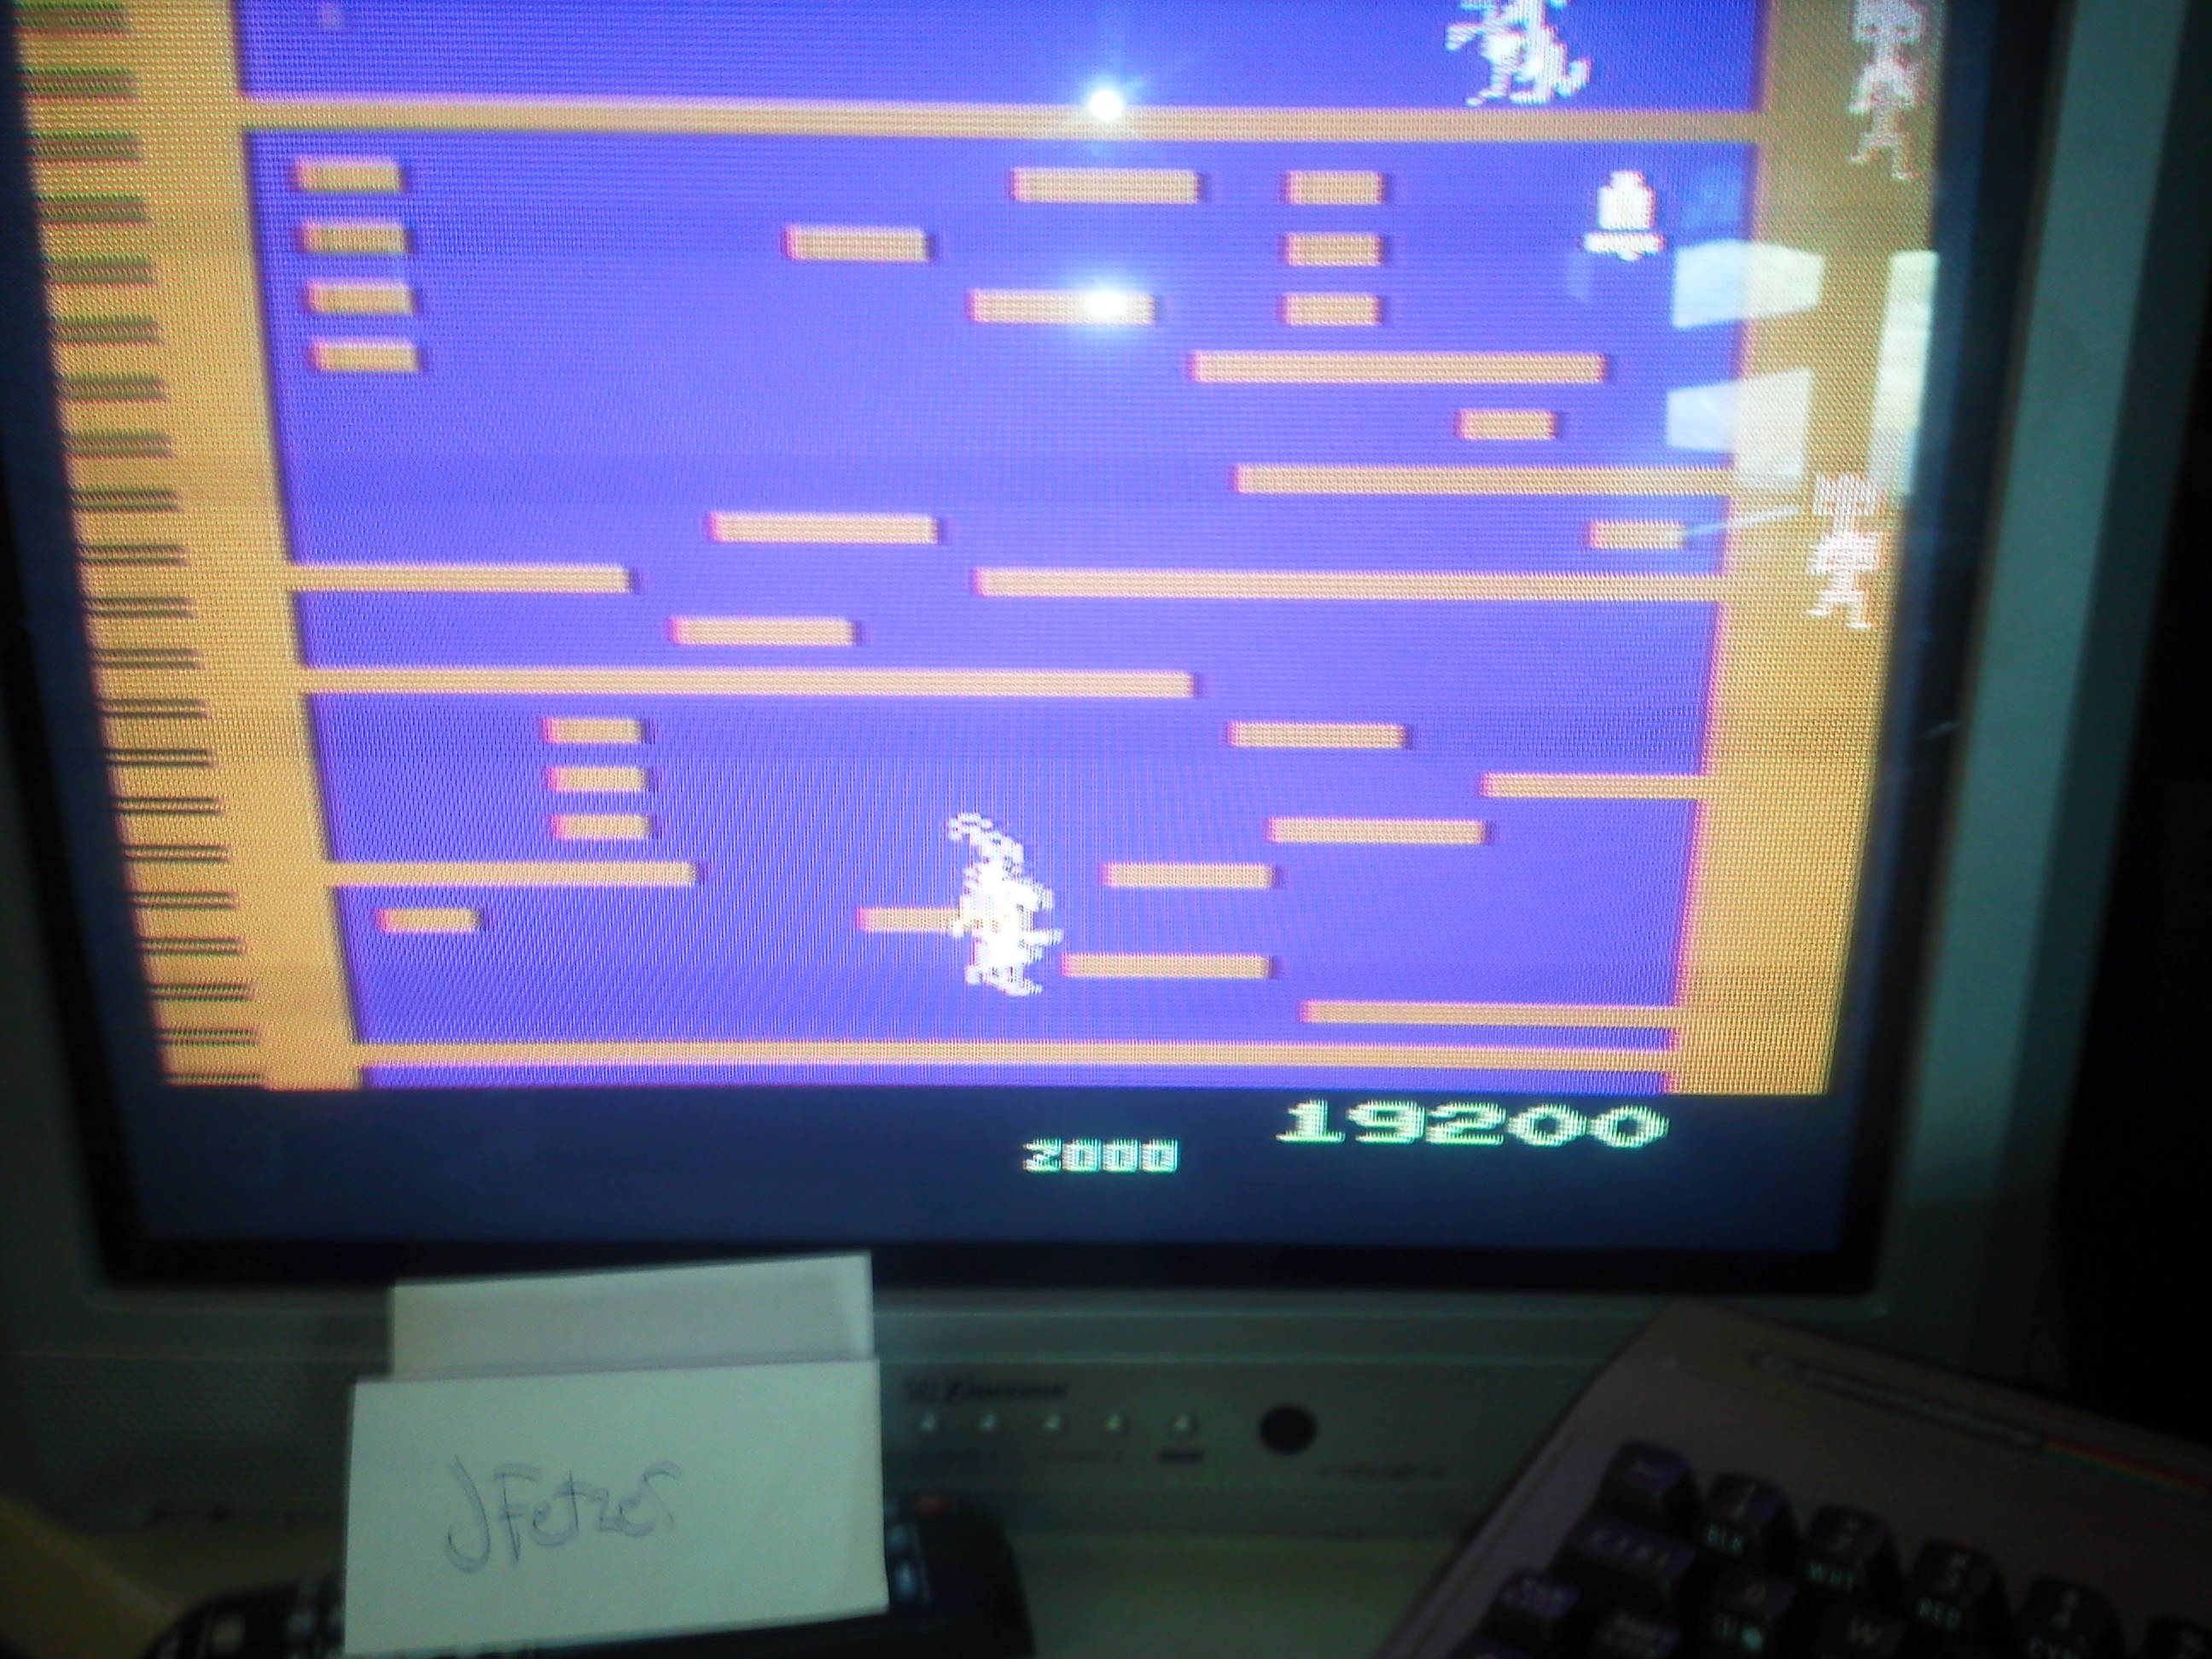 jfetzer: Kangaroo (Atari 2600) 19,200 points on 2014-04-08 15:50:29